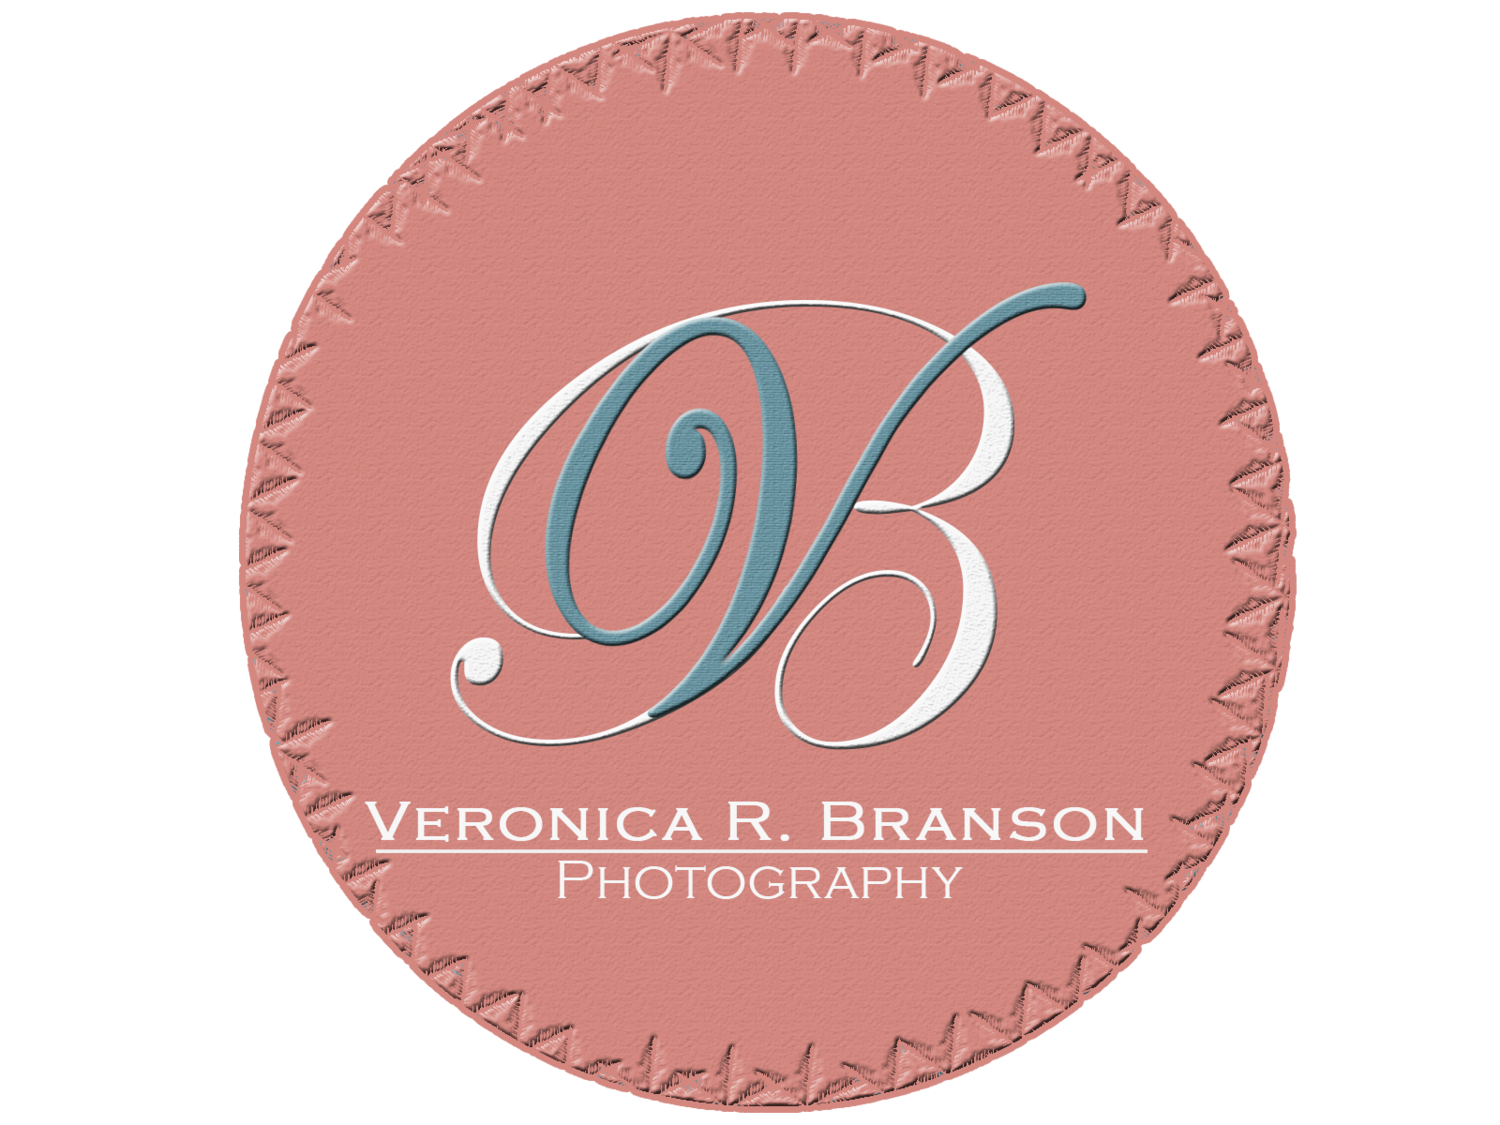 Veronica R. Branson Photography